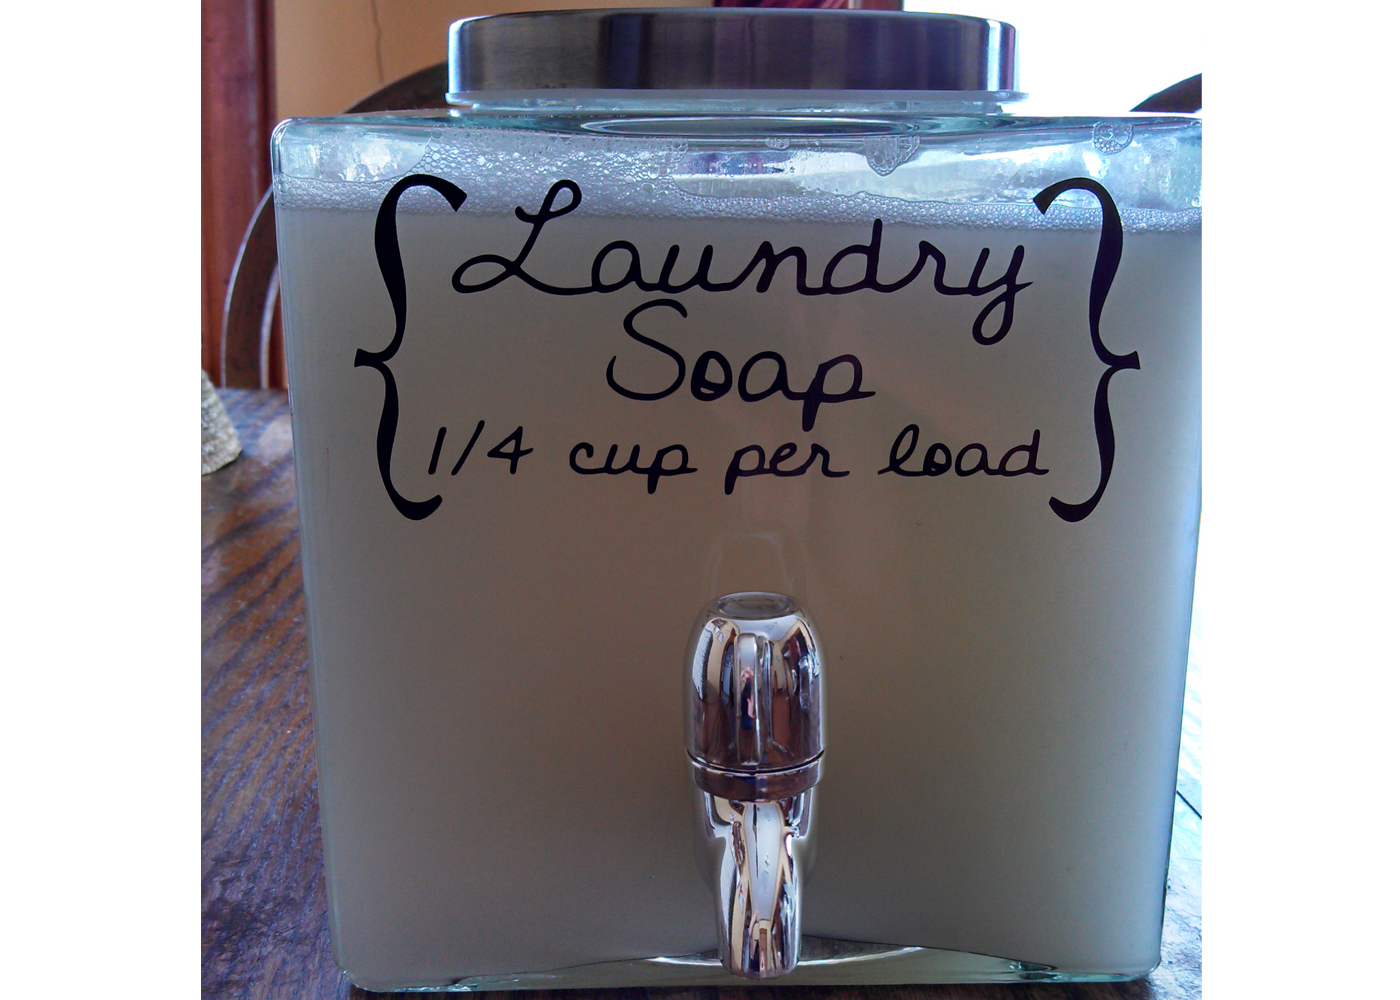 laundry-soap-label-vinyl-decal-sticker.jpg